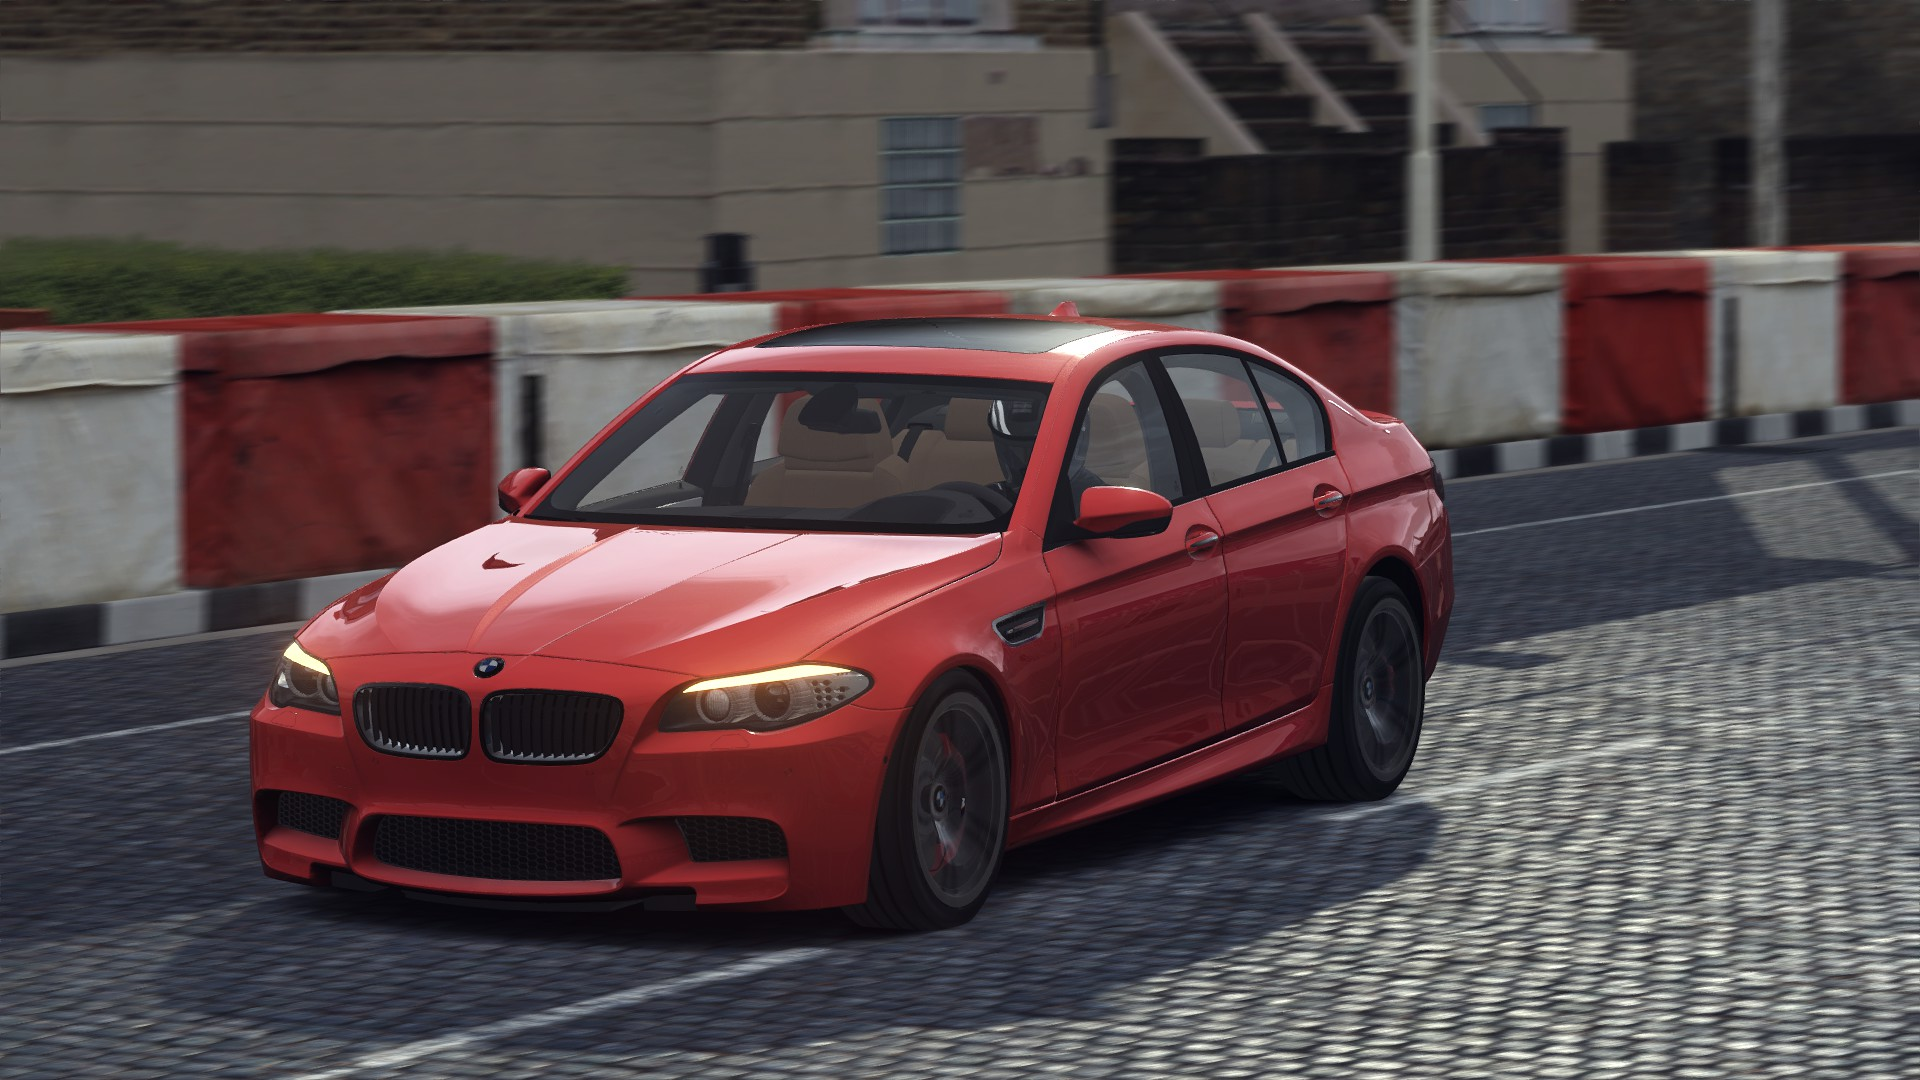 Bmw M5 F10 Replica Assetto Corsa Simulator